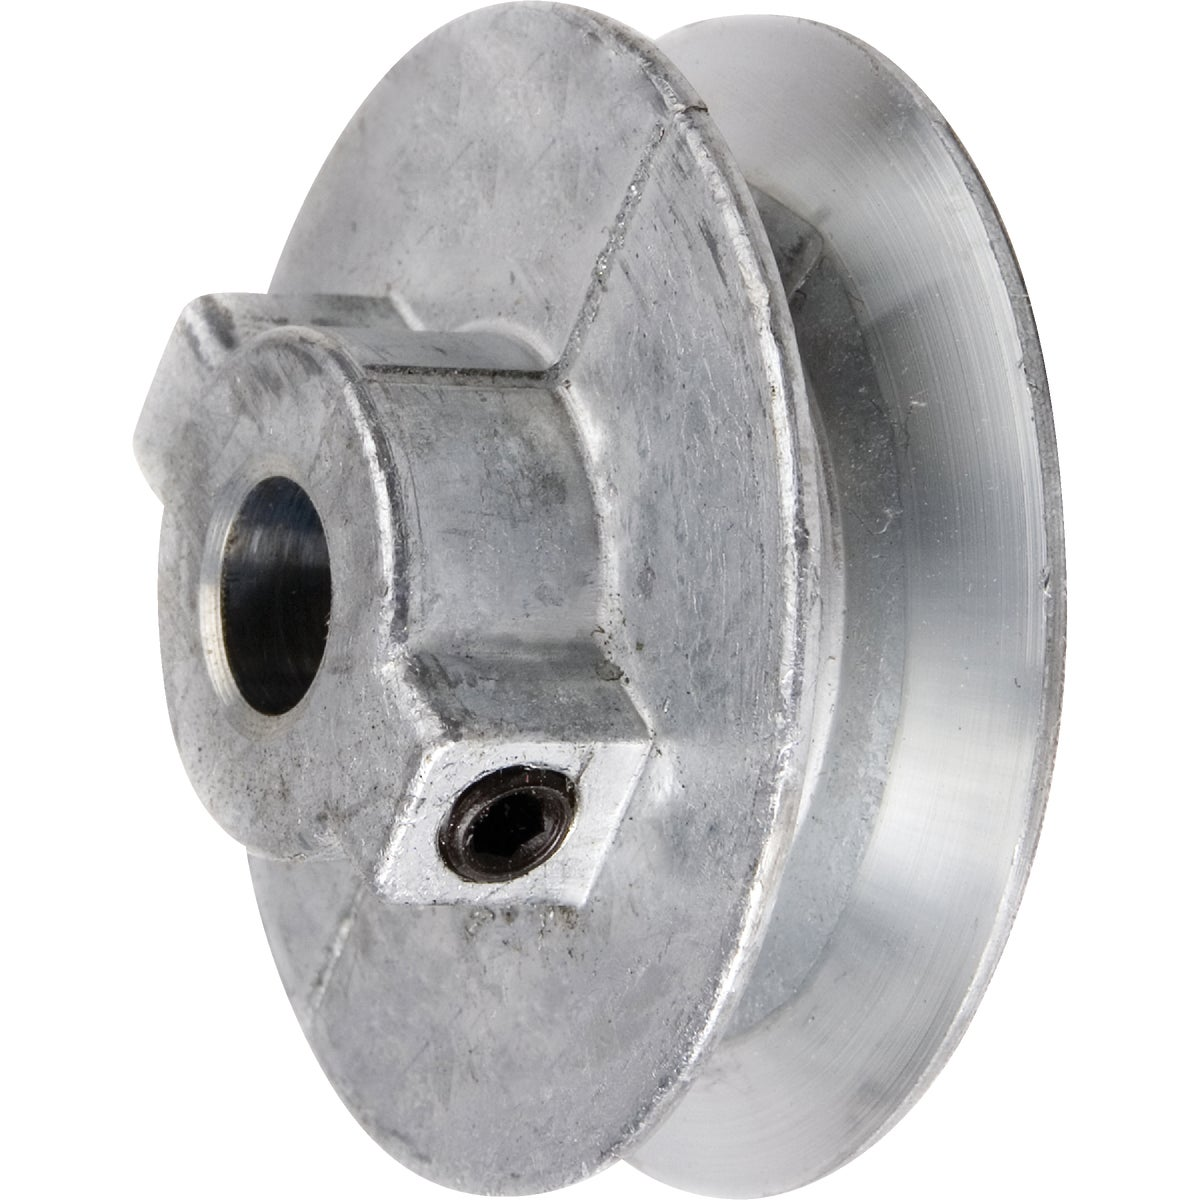 6X1/2 PULLEY - 600A5 by Chicago Die Casting